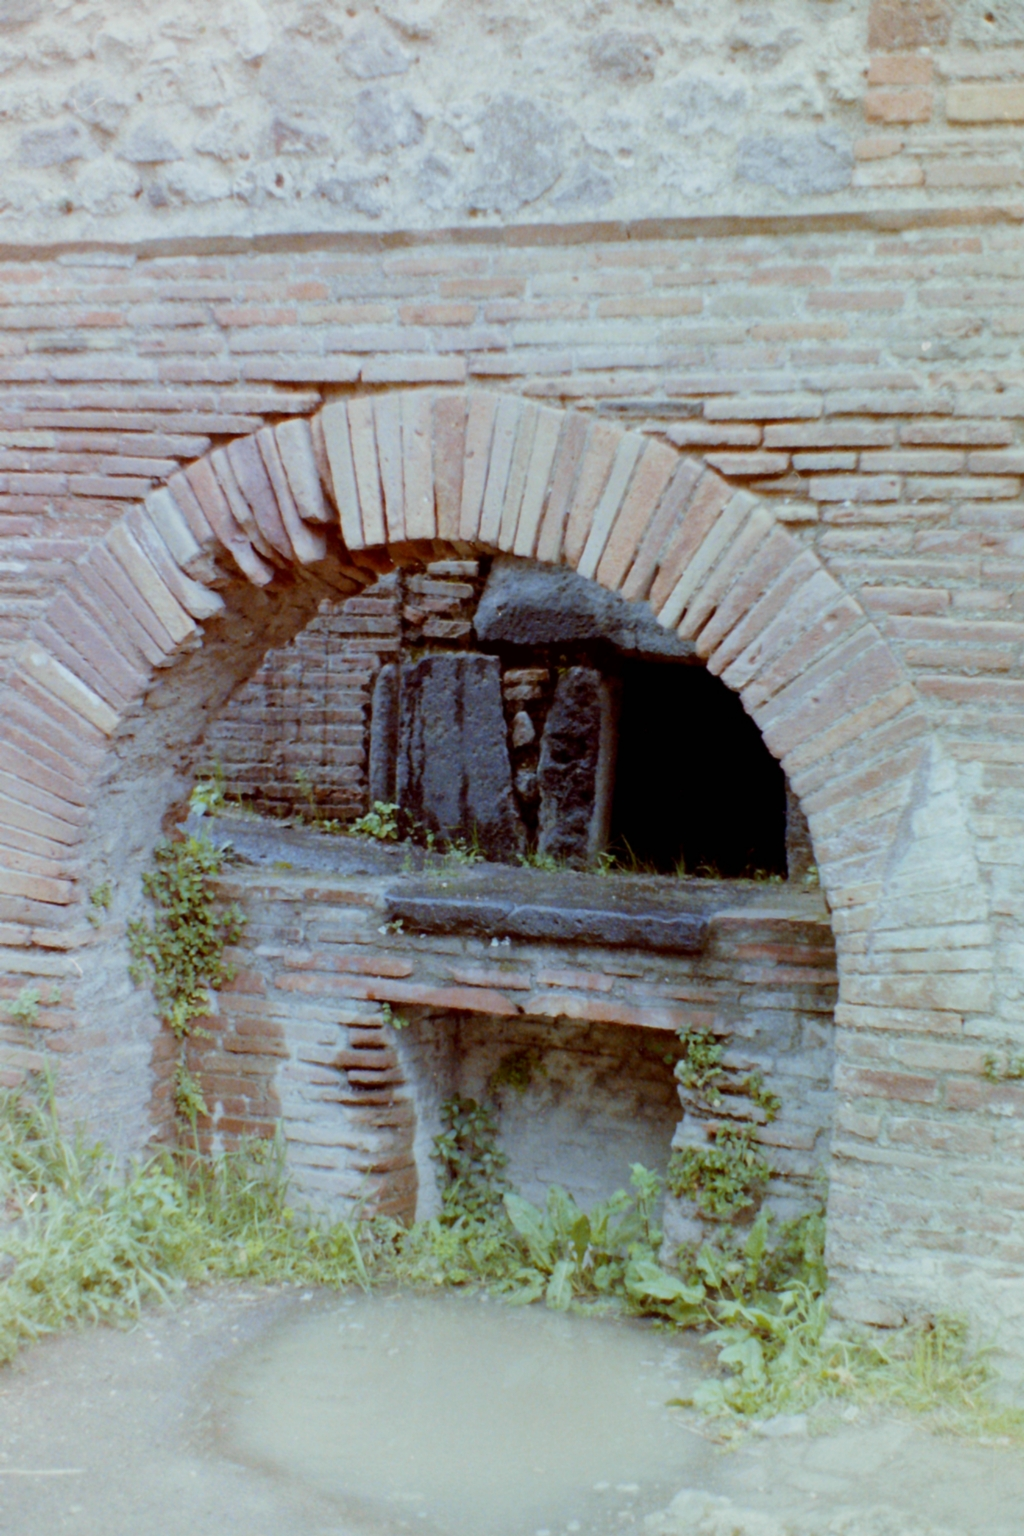 VII.2.22 Pompeii. 4th April 1980, pre earthquake. Looking east towards oven. Photo courtesy of Tina Gilbert.